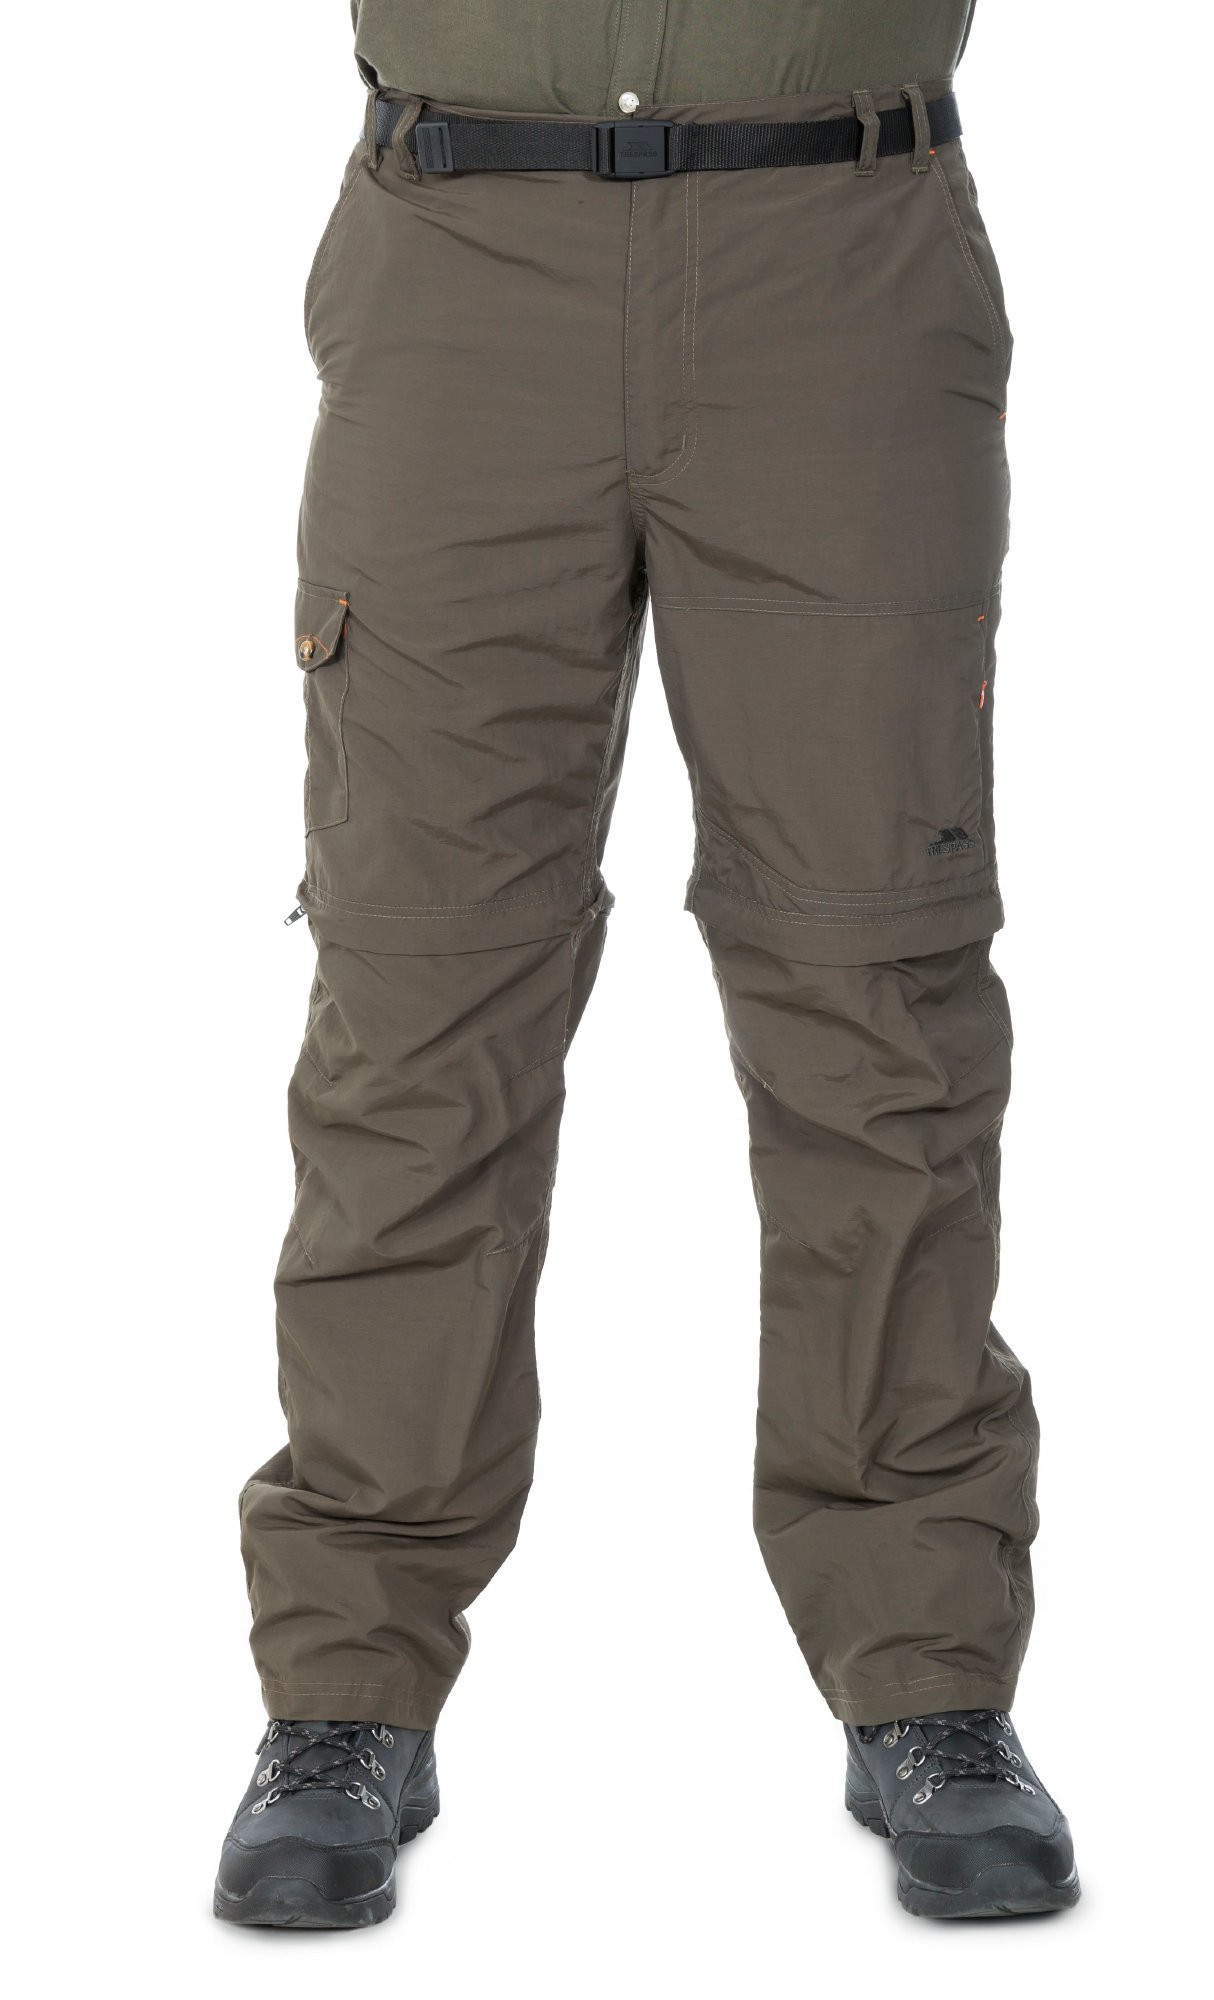 Trespass Rynne - Vandrebuks Zipp-off - Oliven | Trousers